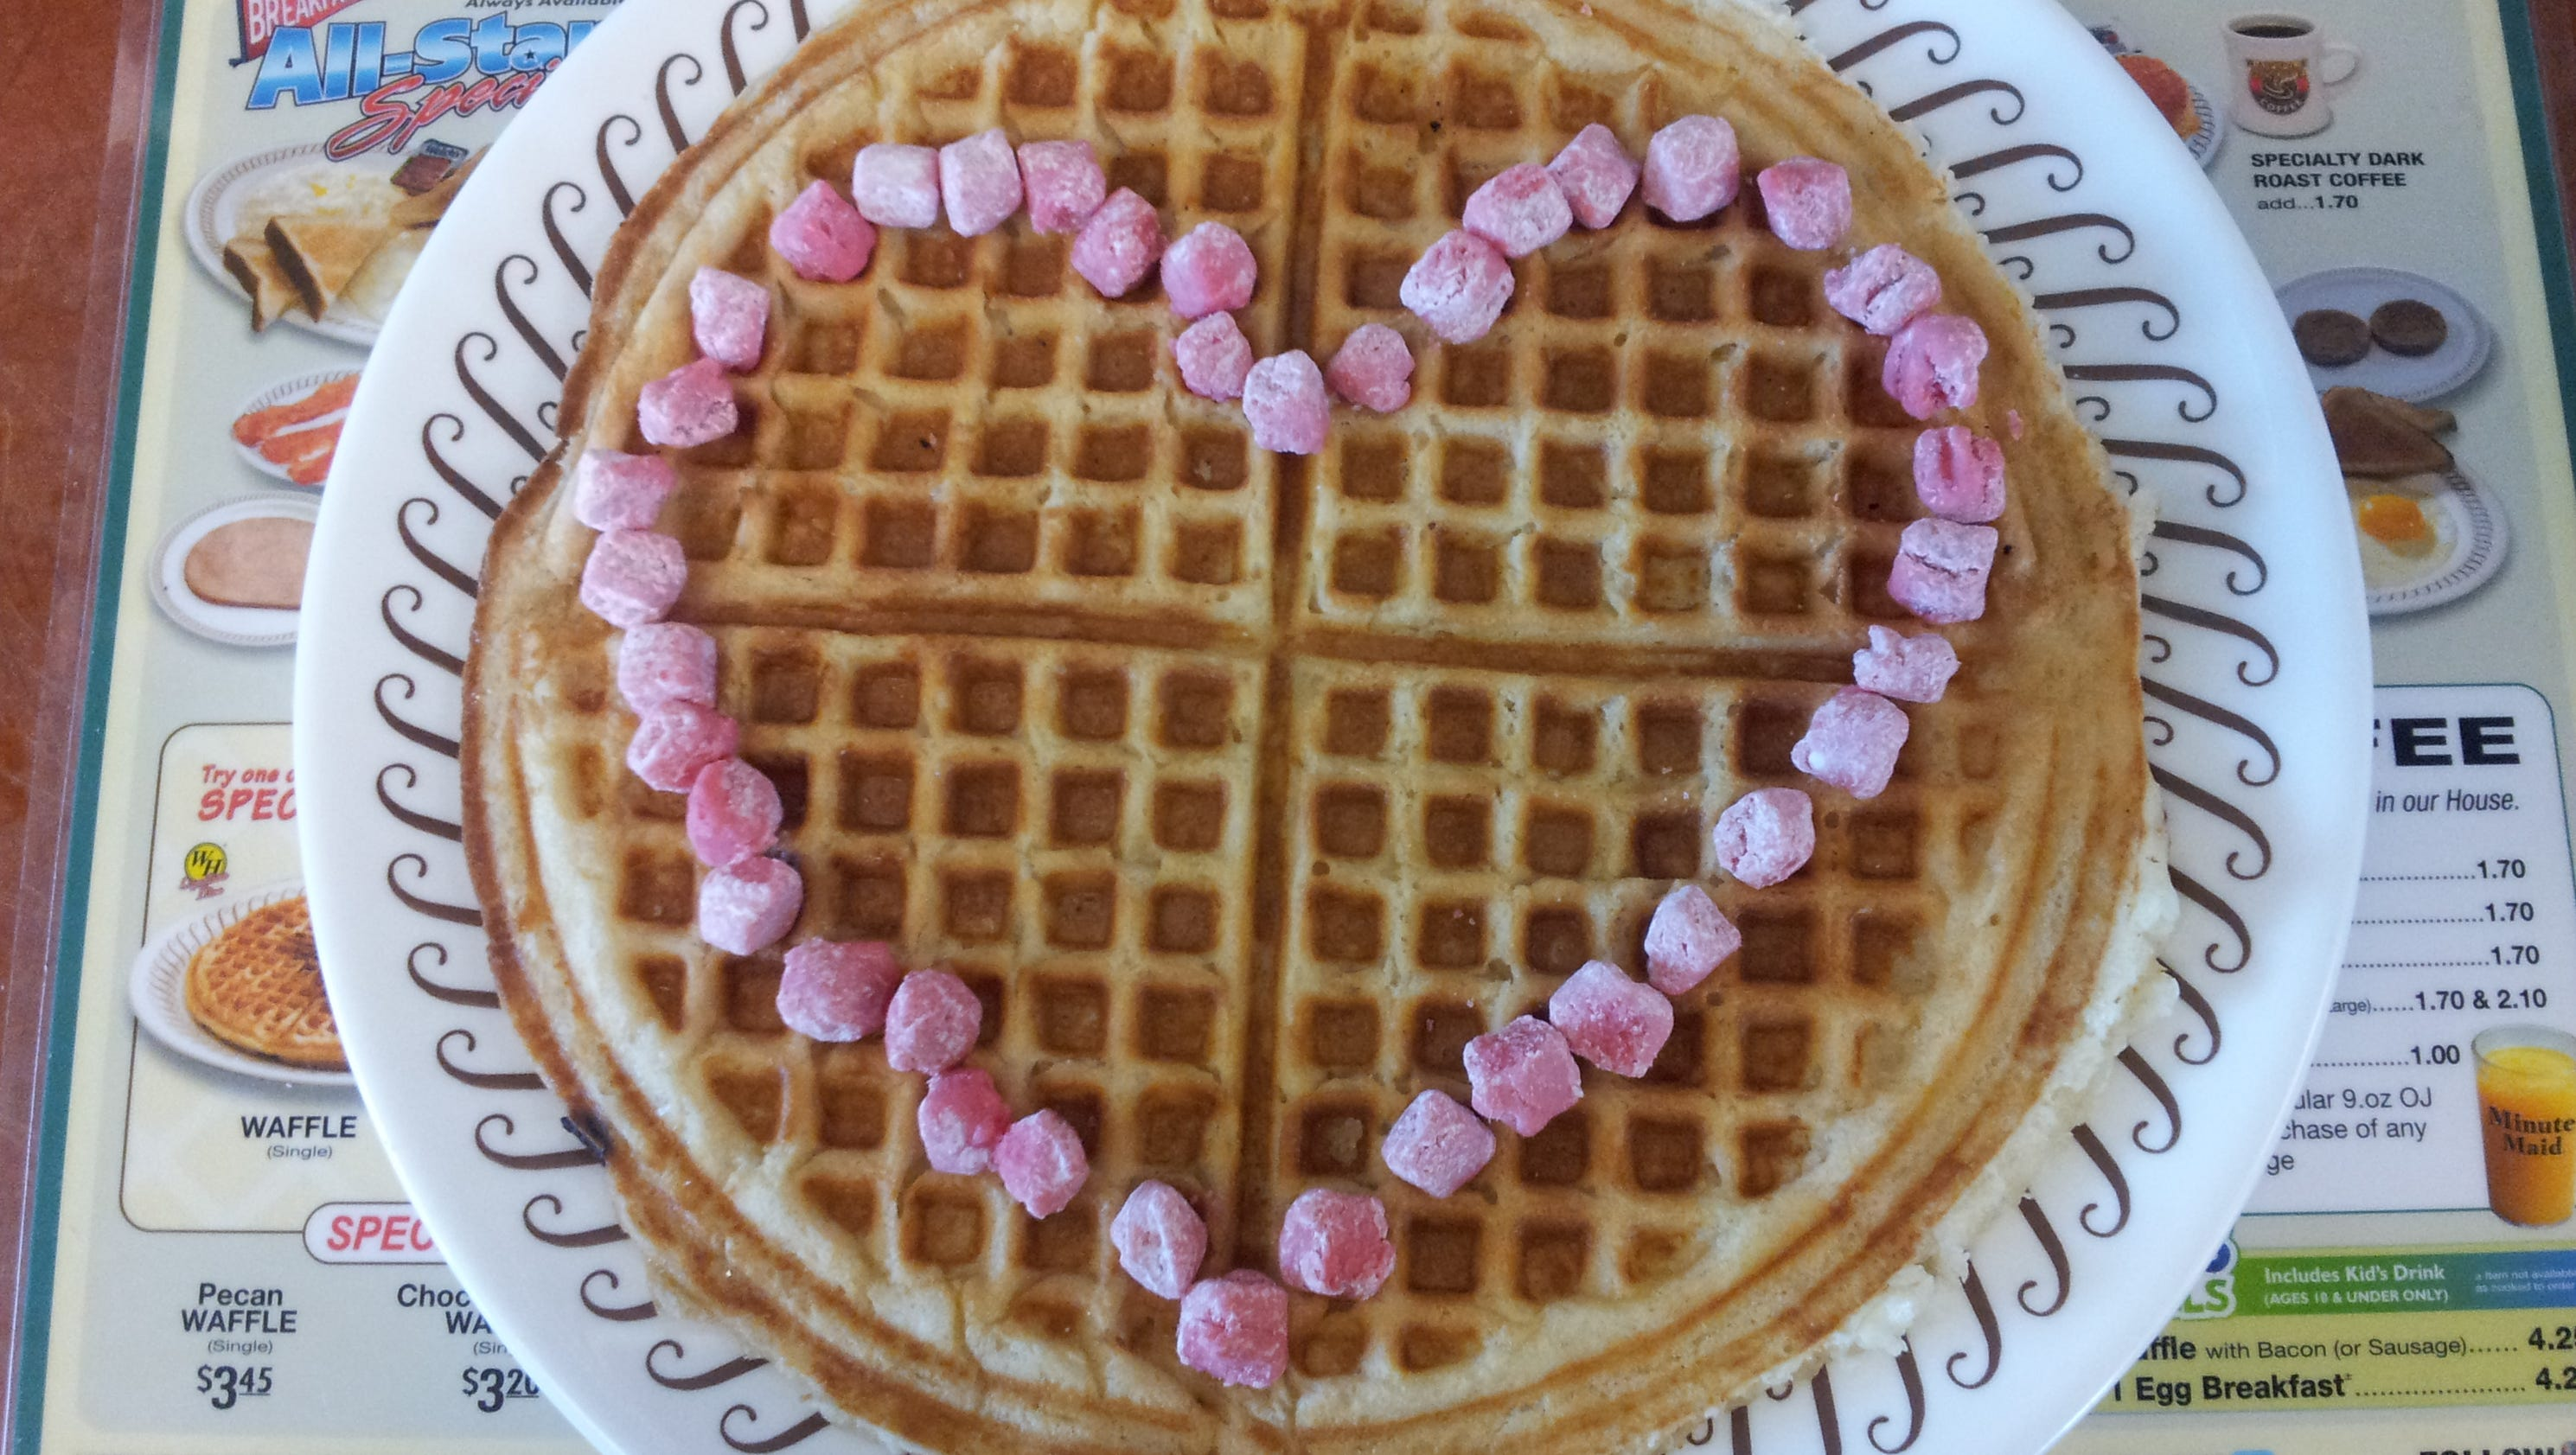 Valentines Day at Waffle House